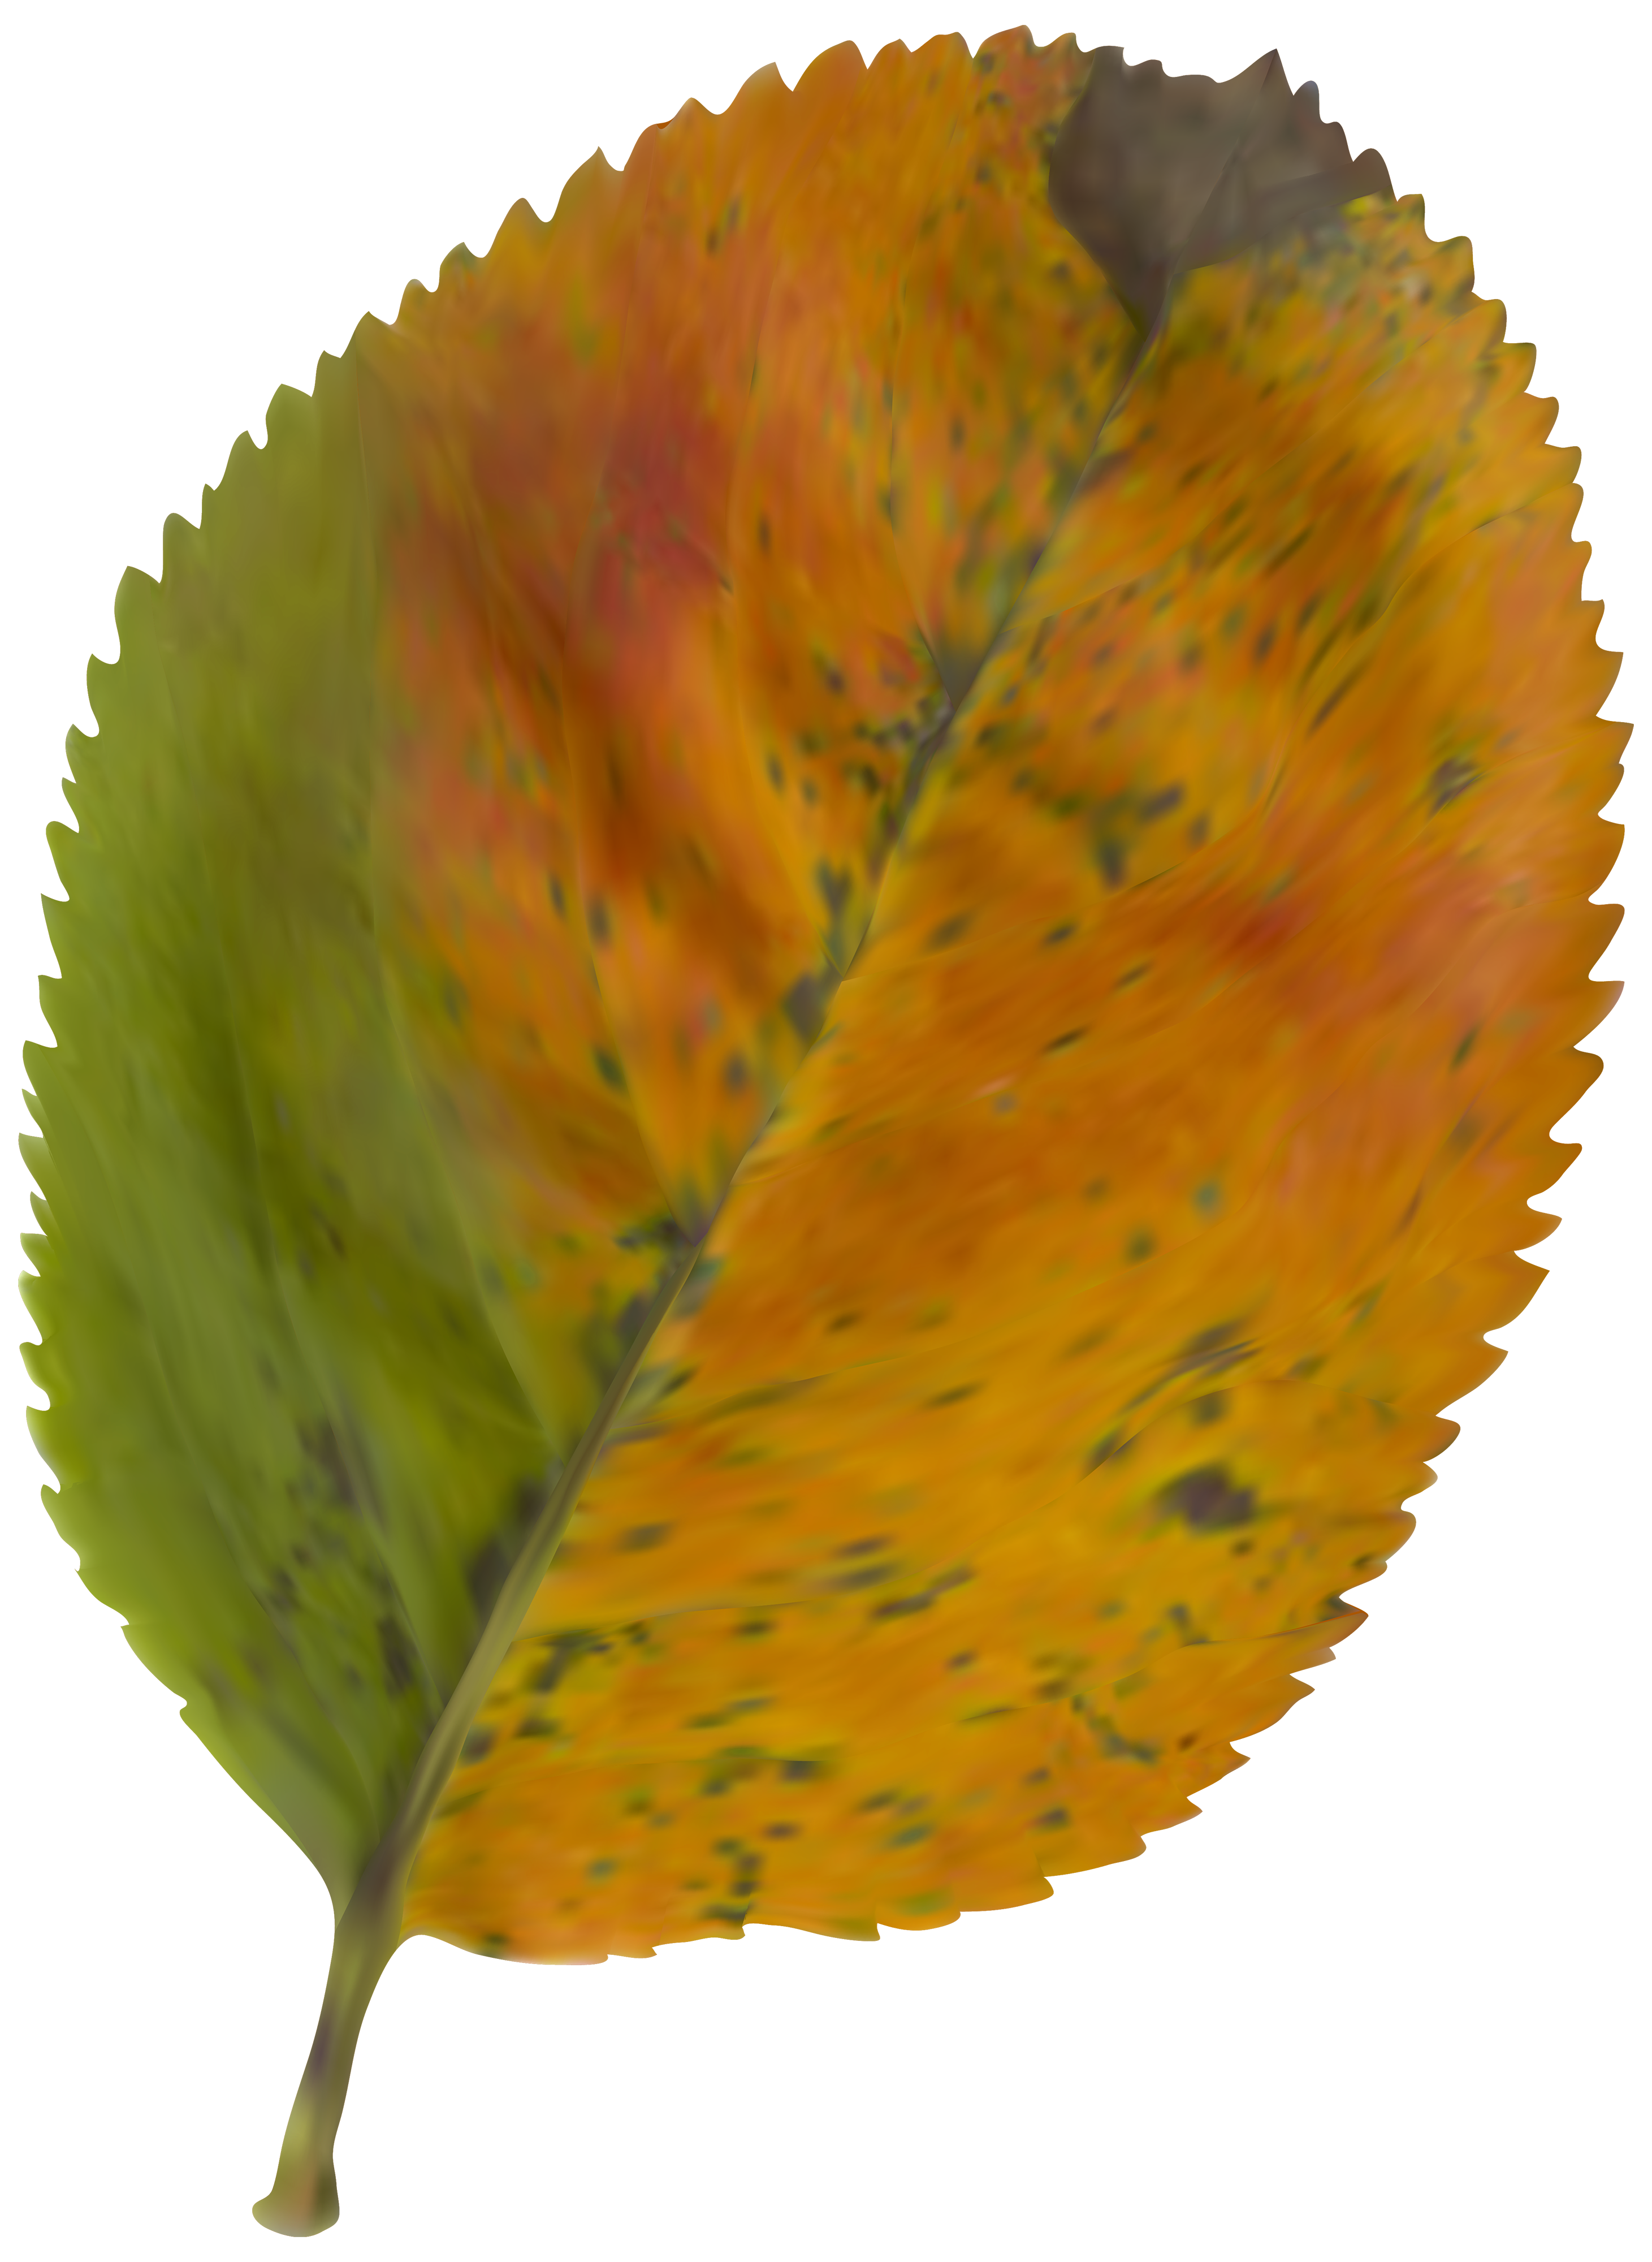 Beautiful Autumn Leaf PNG Clipart Image.